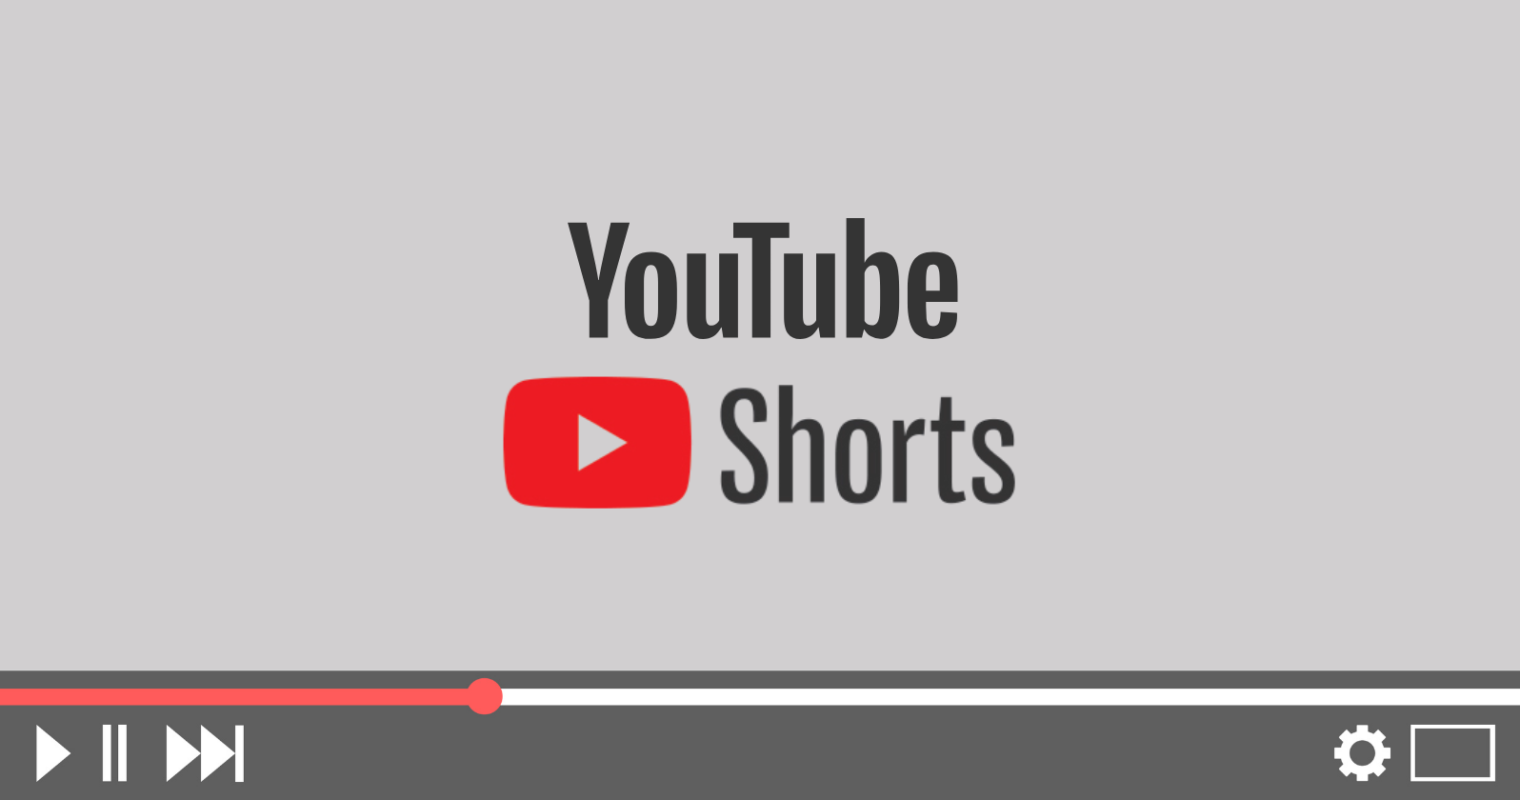 YouTube Shorts: An Introductory Guide